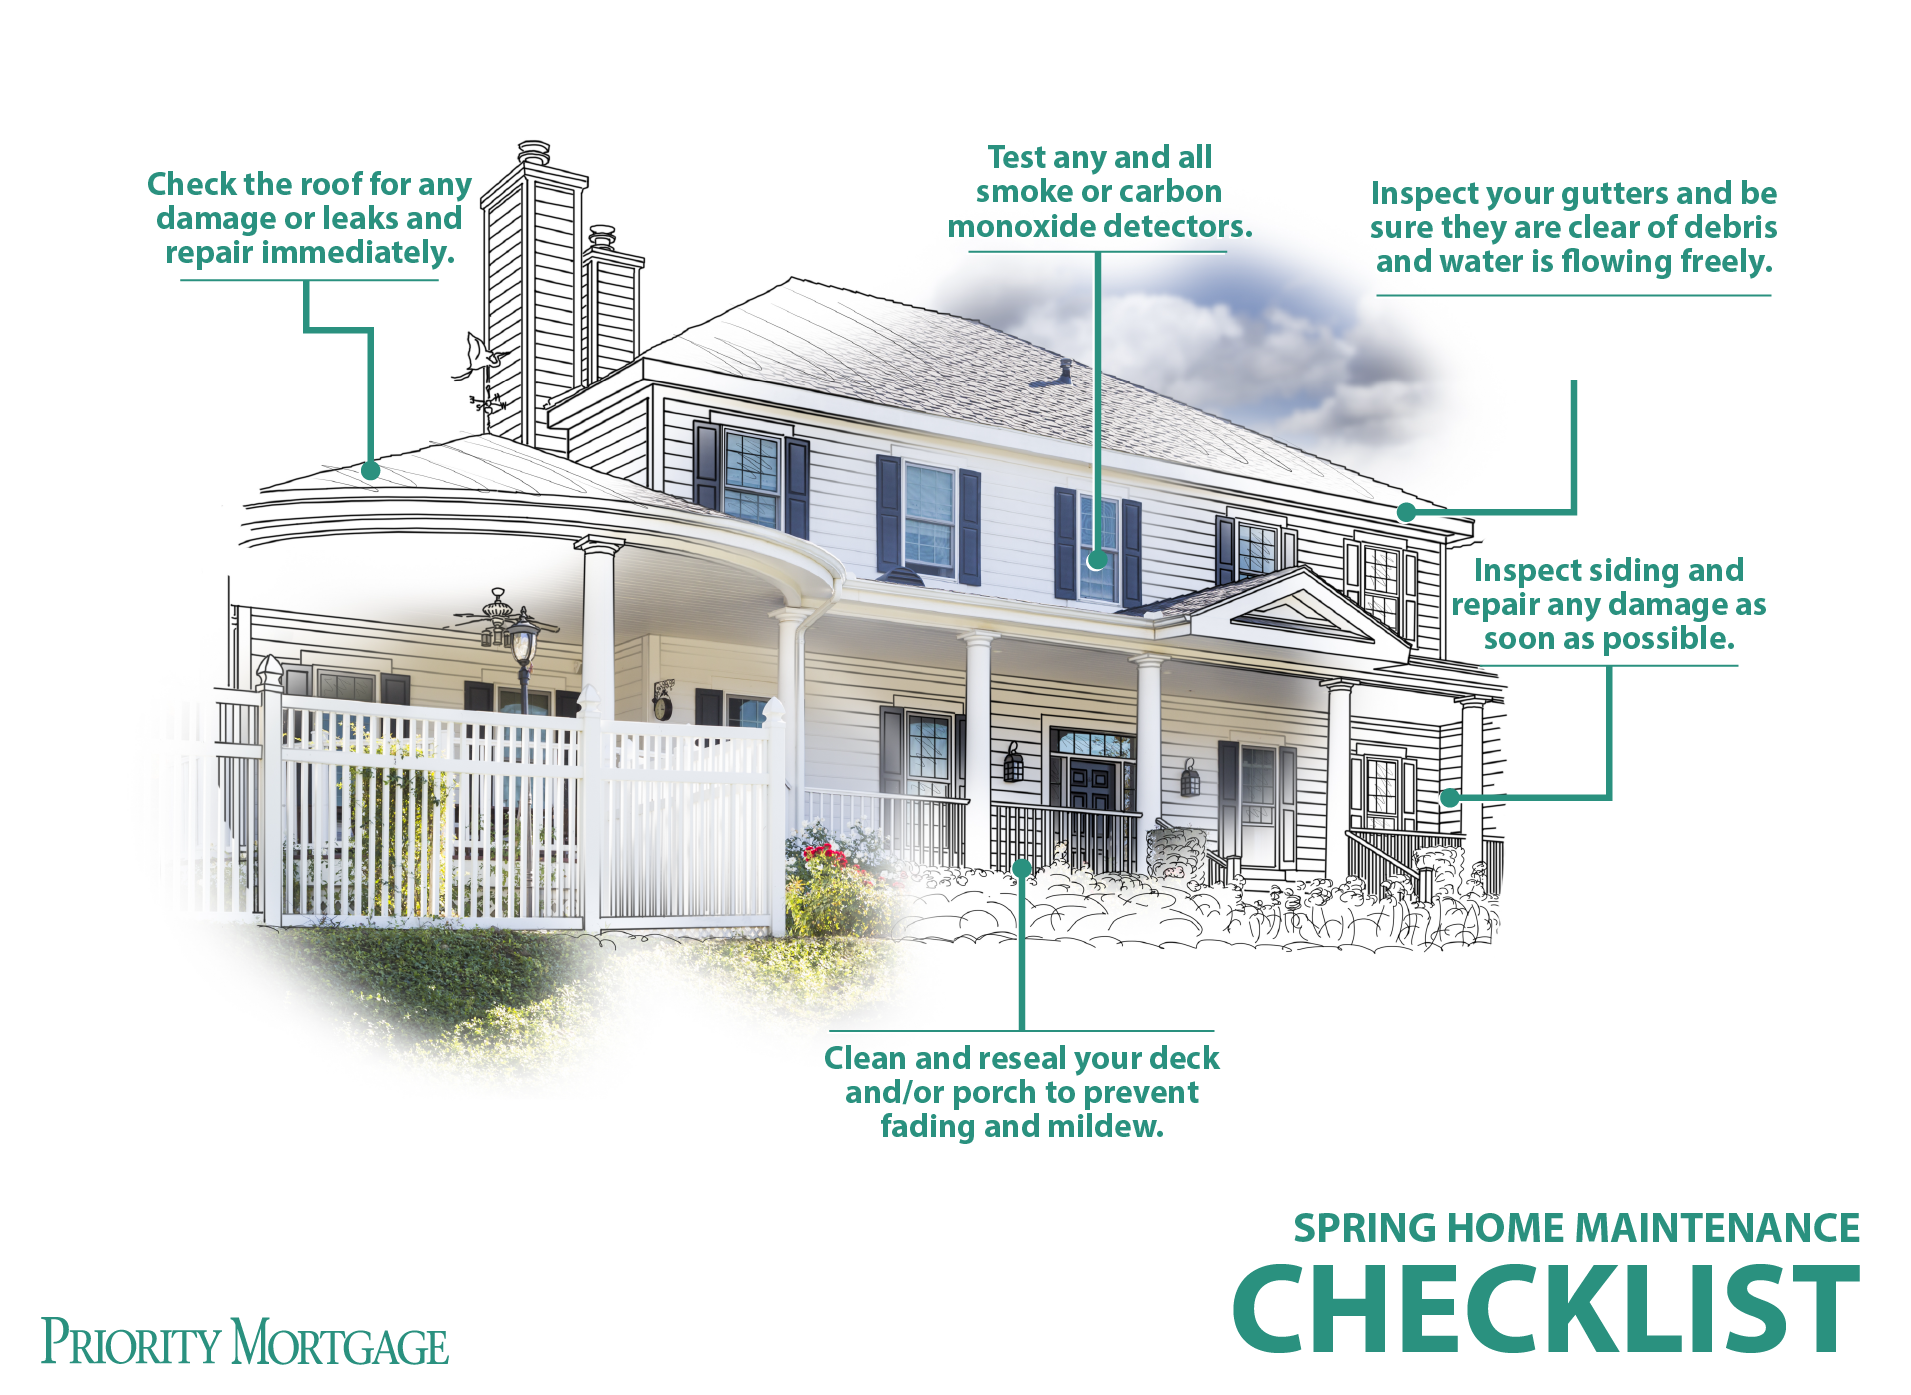 The spring home maintenance checklist priority mortgage corp for Homeowner s checklist for building a house